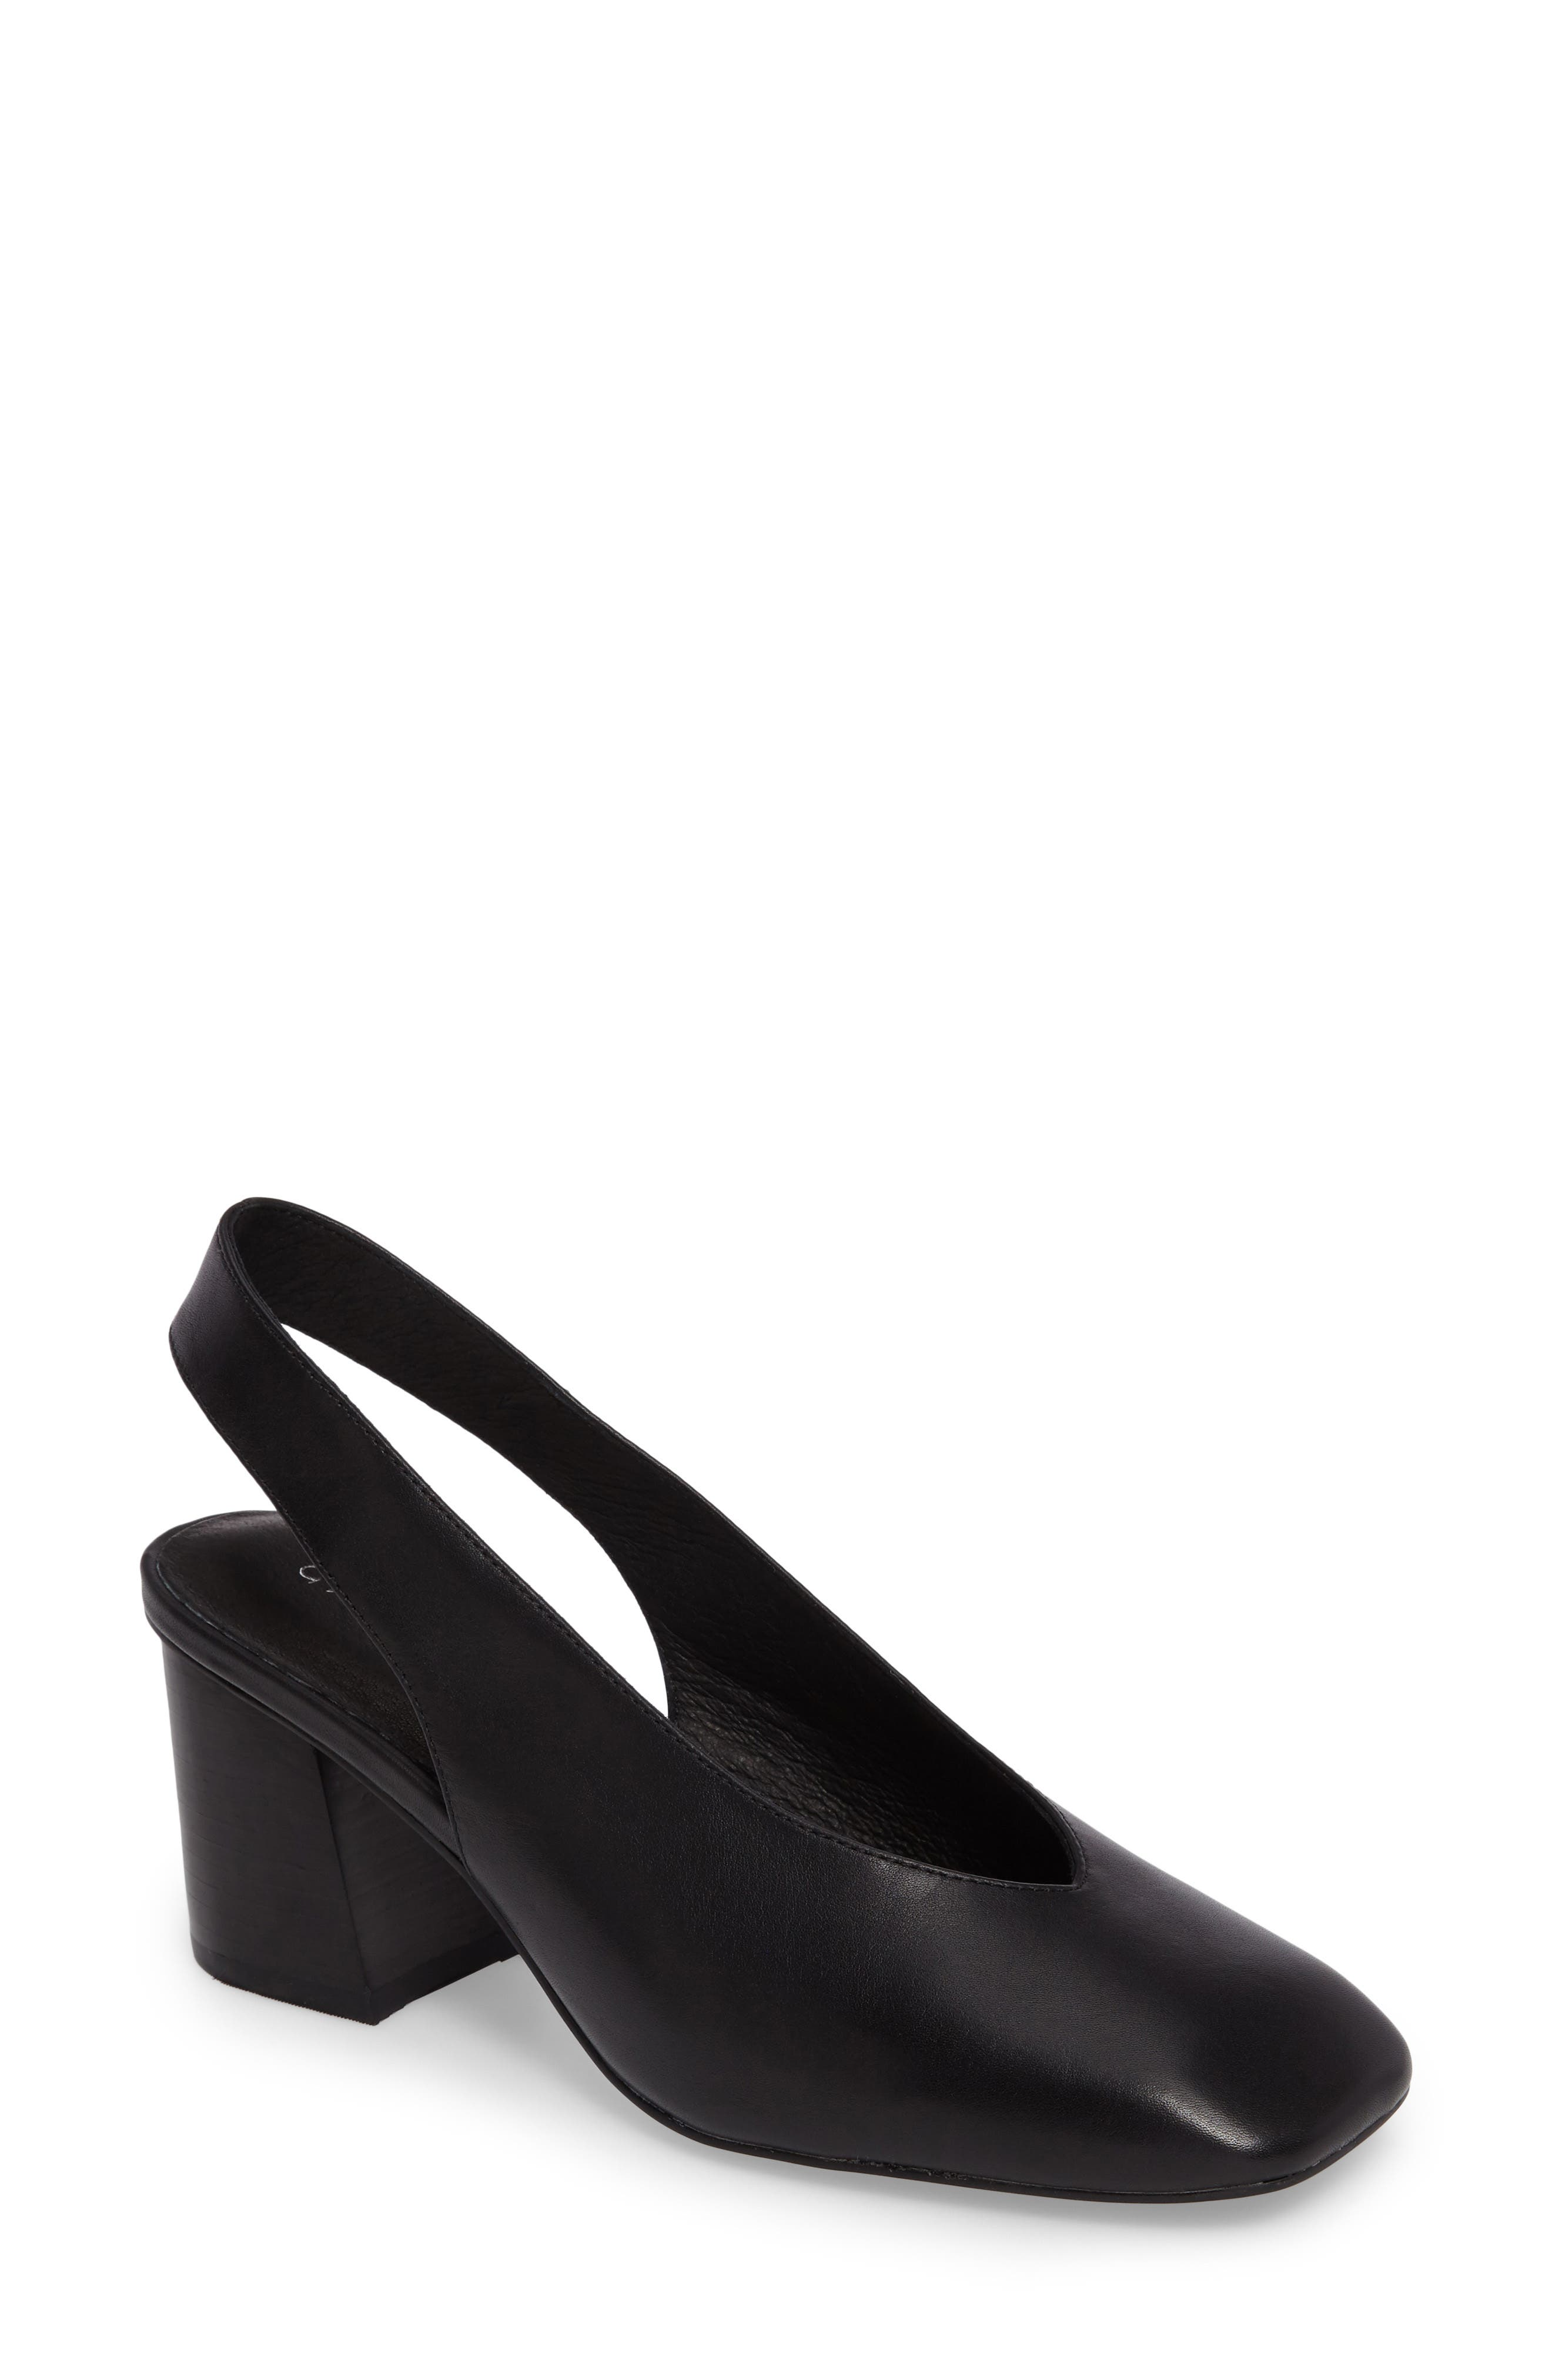 Sydney Square-Toe Slingback Pump,                             Main thumbnail 1, color,                             001